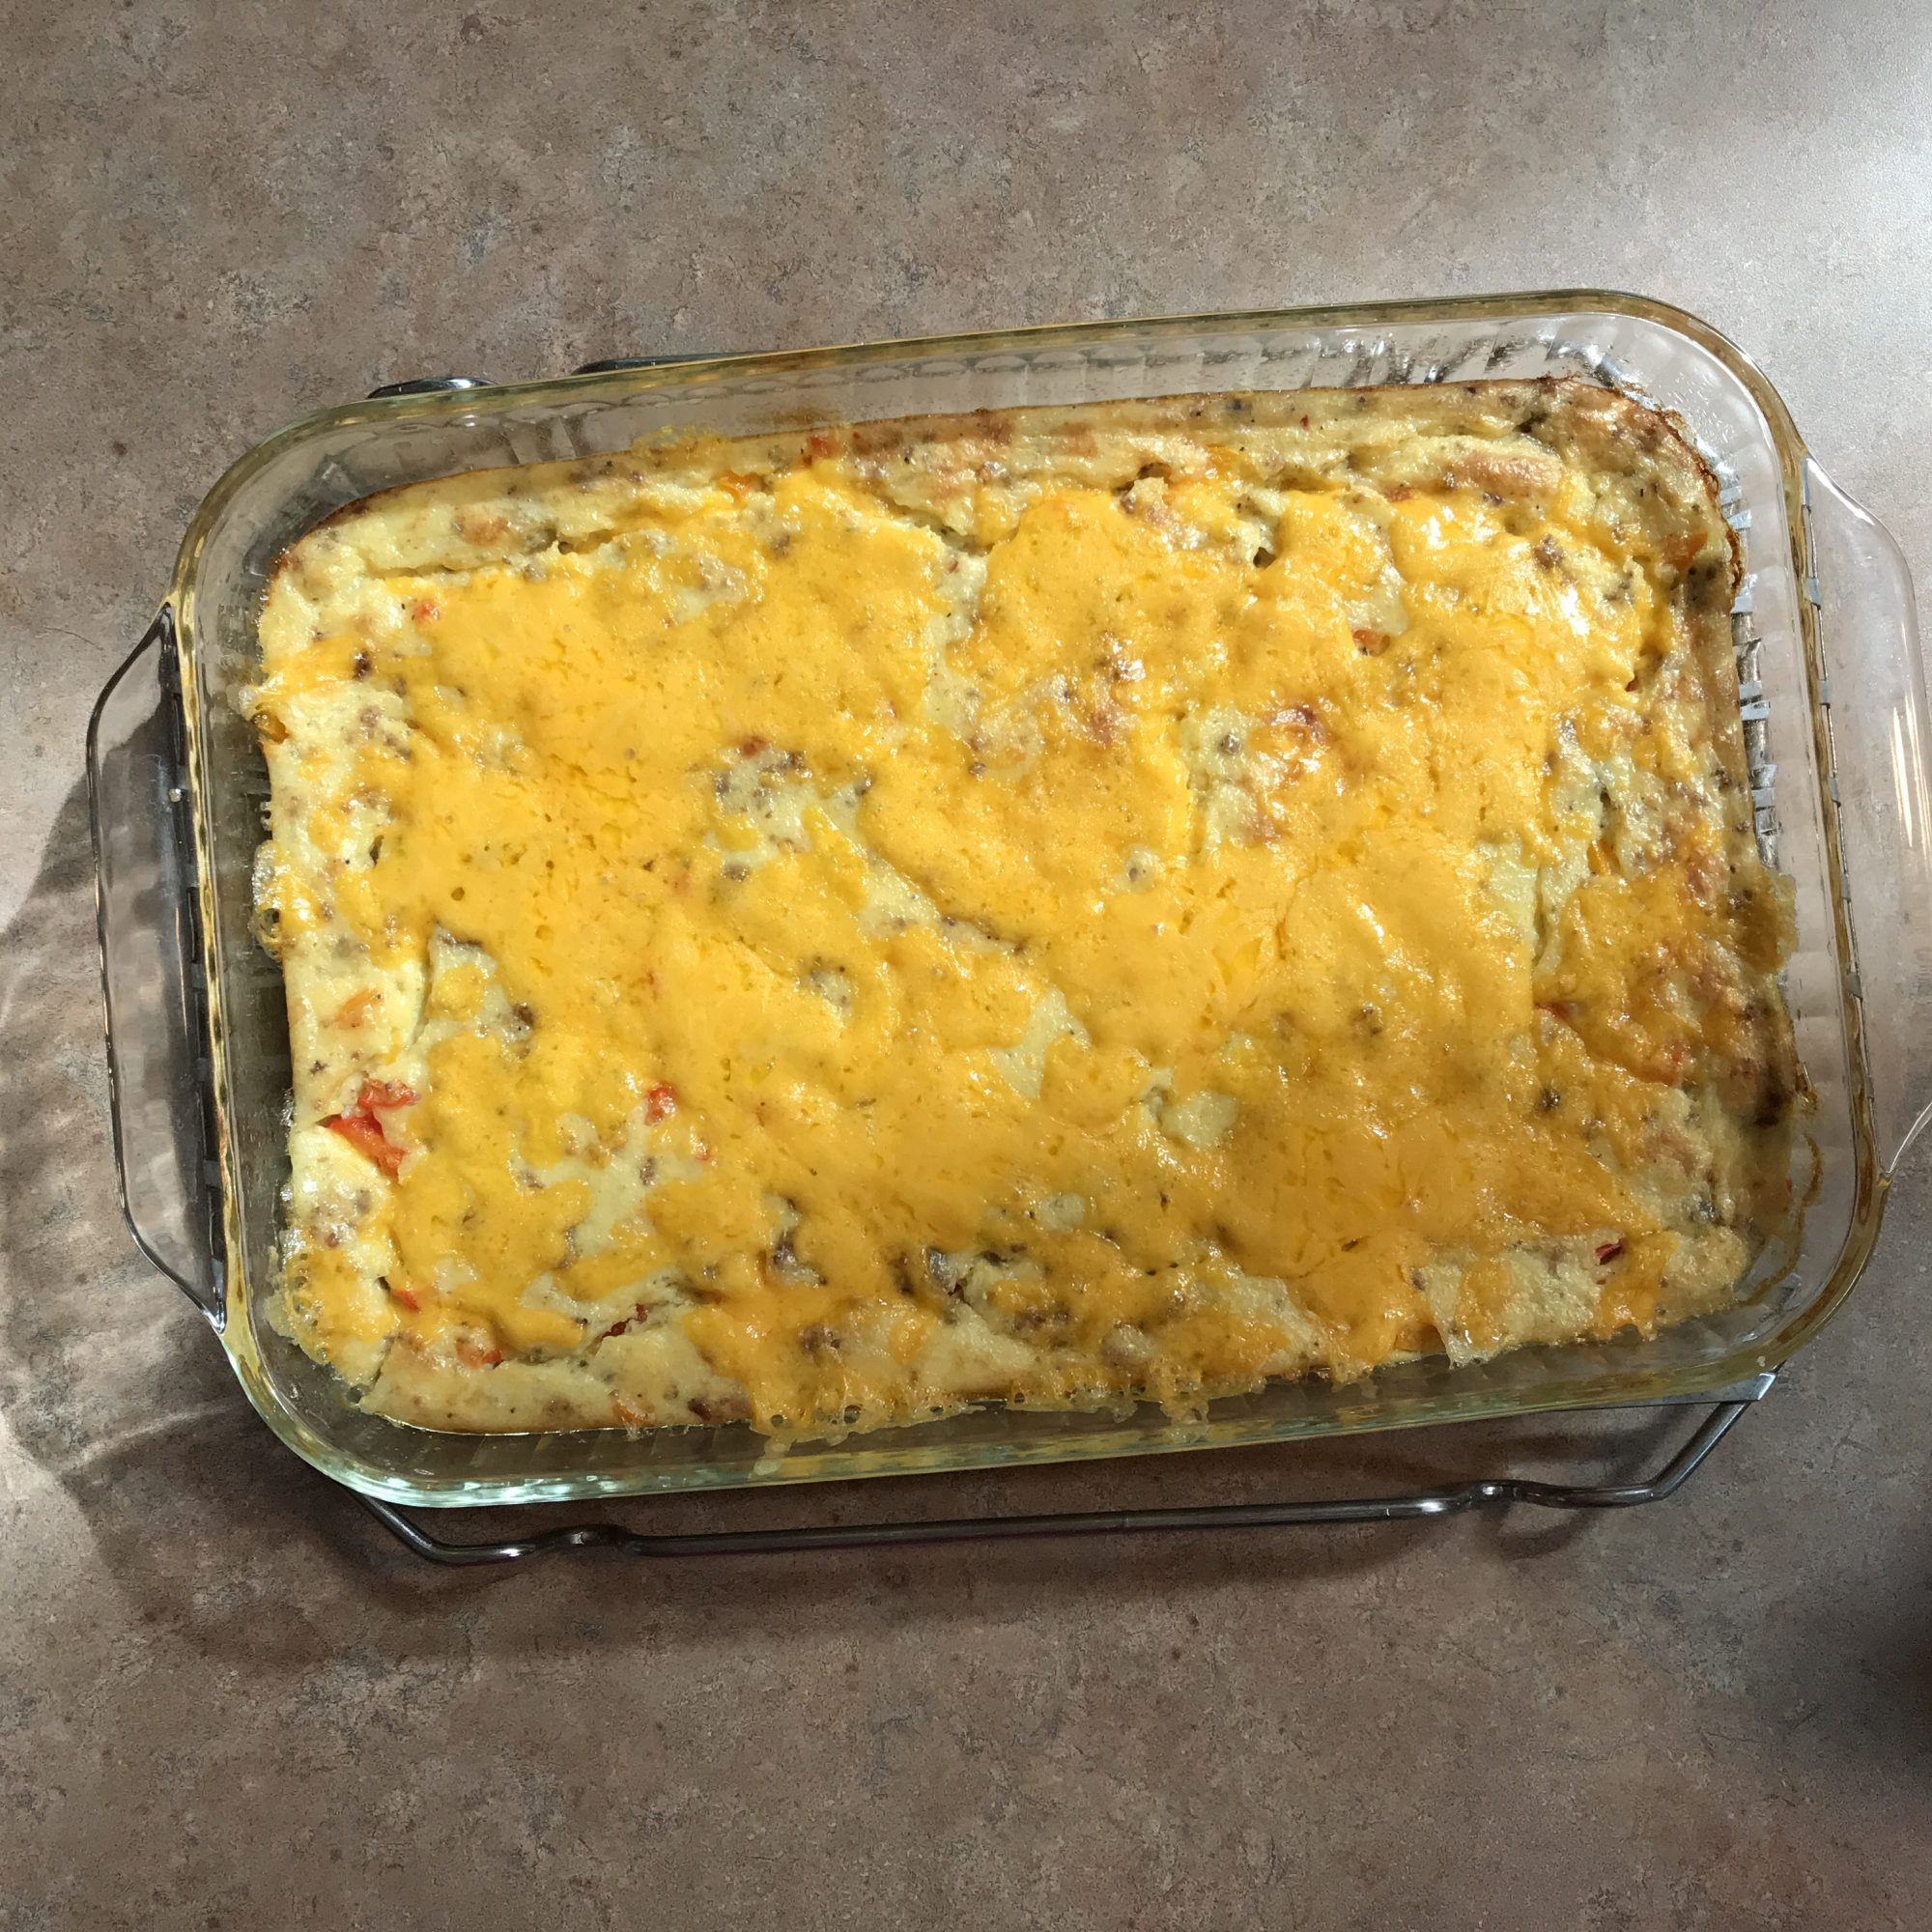 Grits, Sausage, and Egg Casserole